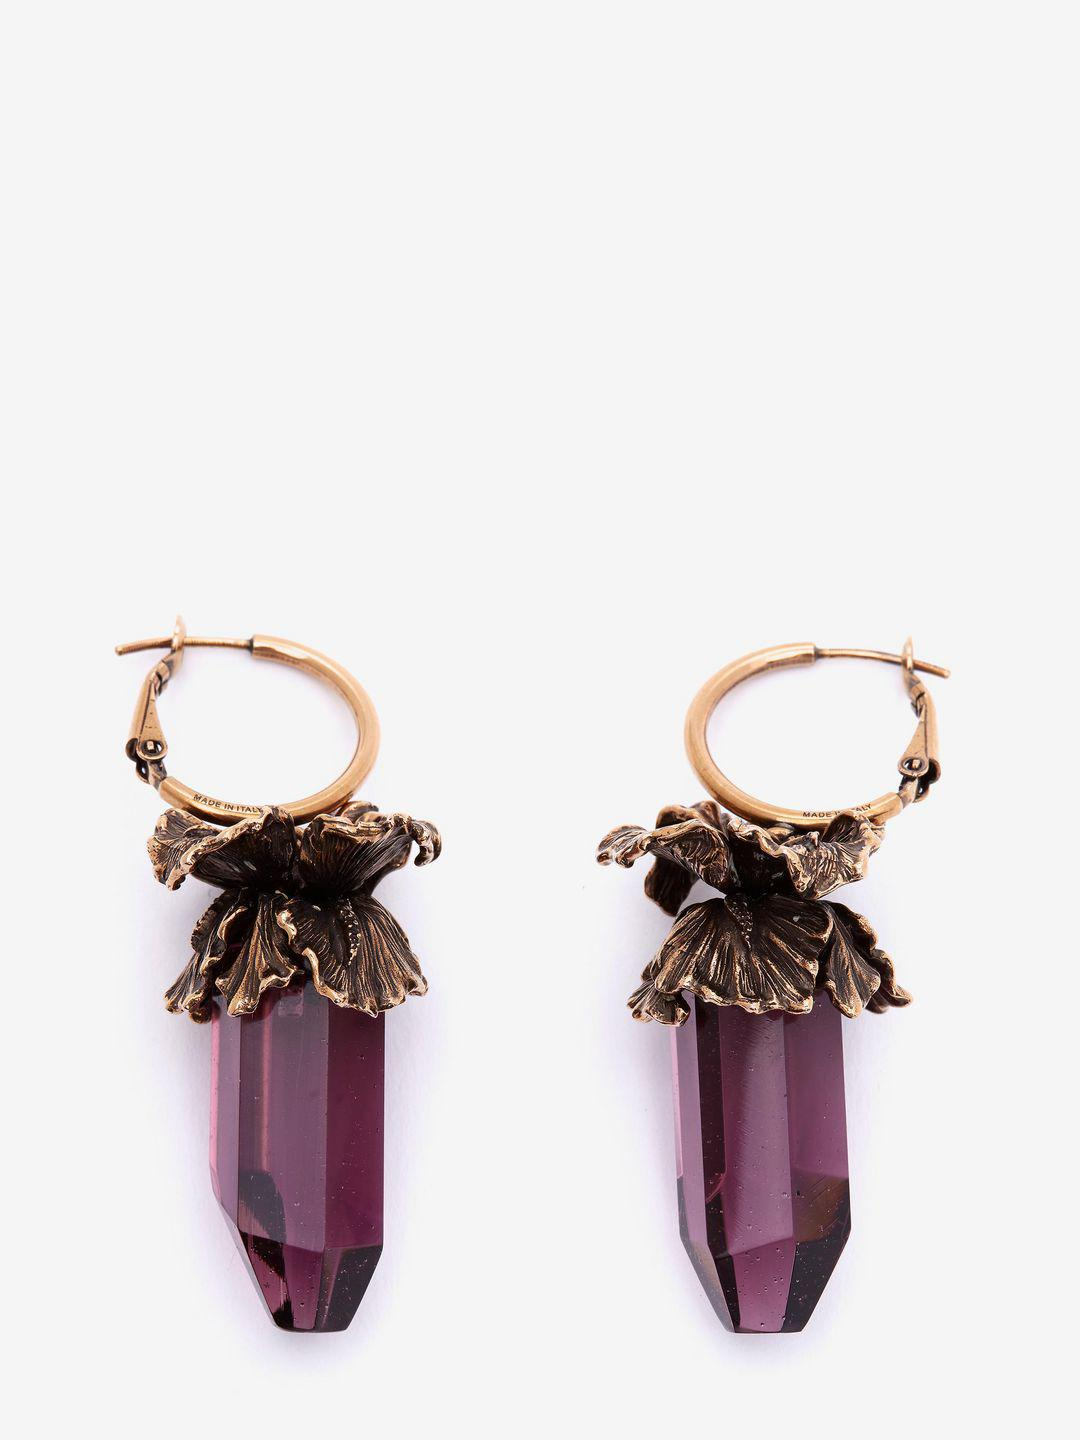 Limited Edition Cheap Online Iris pendant earrings Alexander McQueen Shop Offer Cheap Online Buy Cheap Fake Cheap Sale Pictures Cheap Amazon LhsdhdQU4